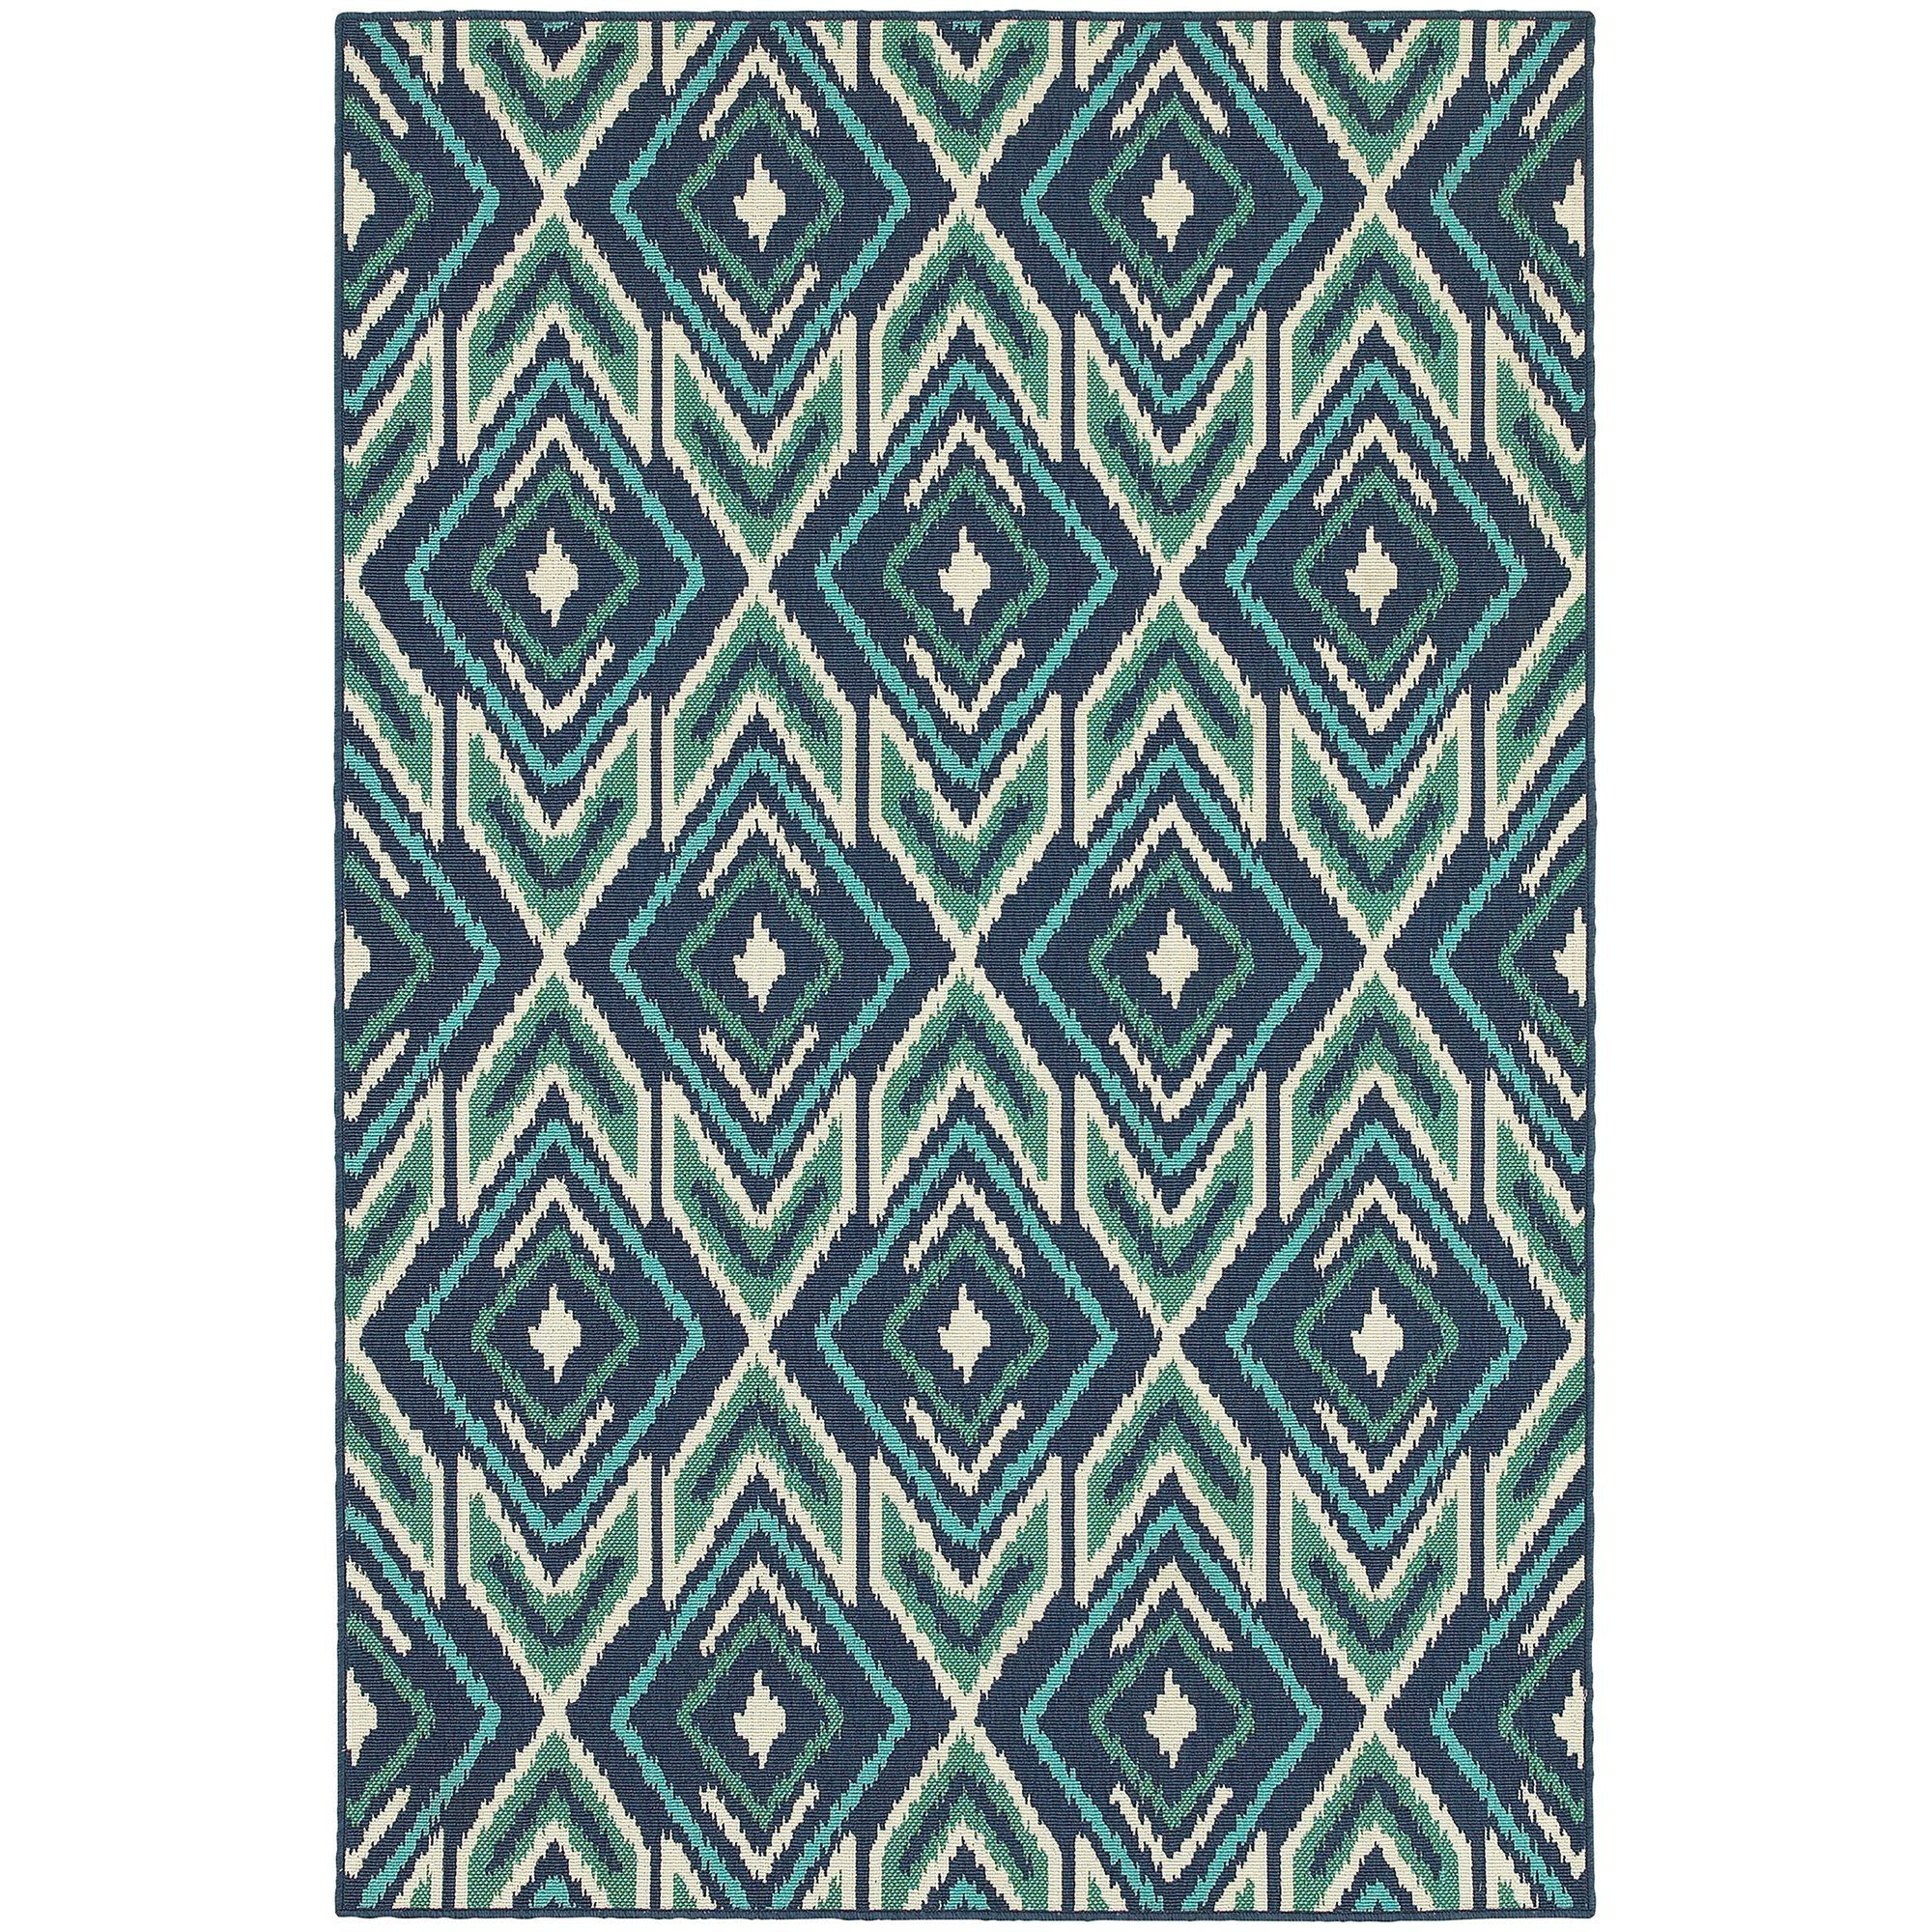 20 Best Indoor Outdoor Rugs Stylish Outdoor Rug Ideas